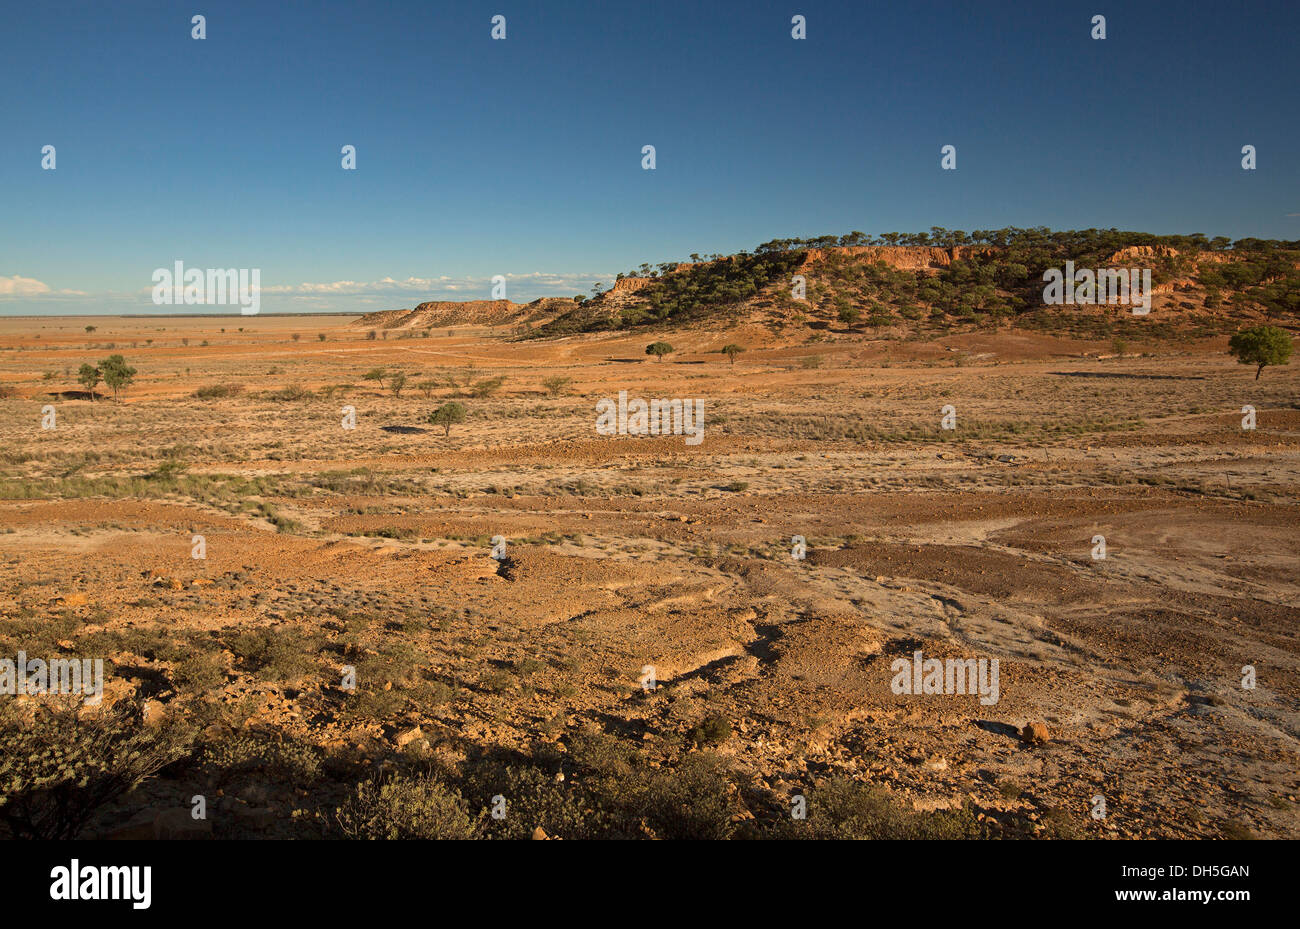 Vast barren Australian outback landscape with brown treeless plains stretching to rugged rocky Ayrshire Hills in western Queensland during drought - Stock Image